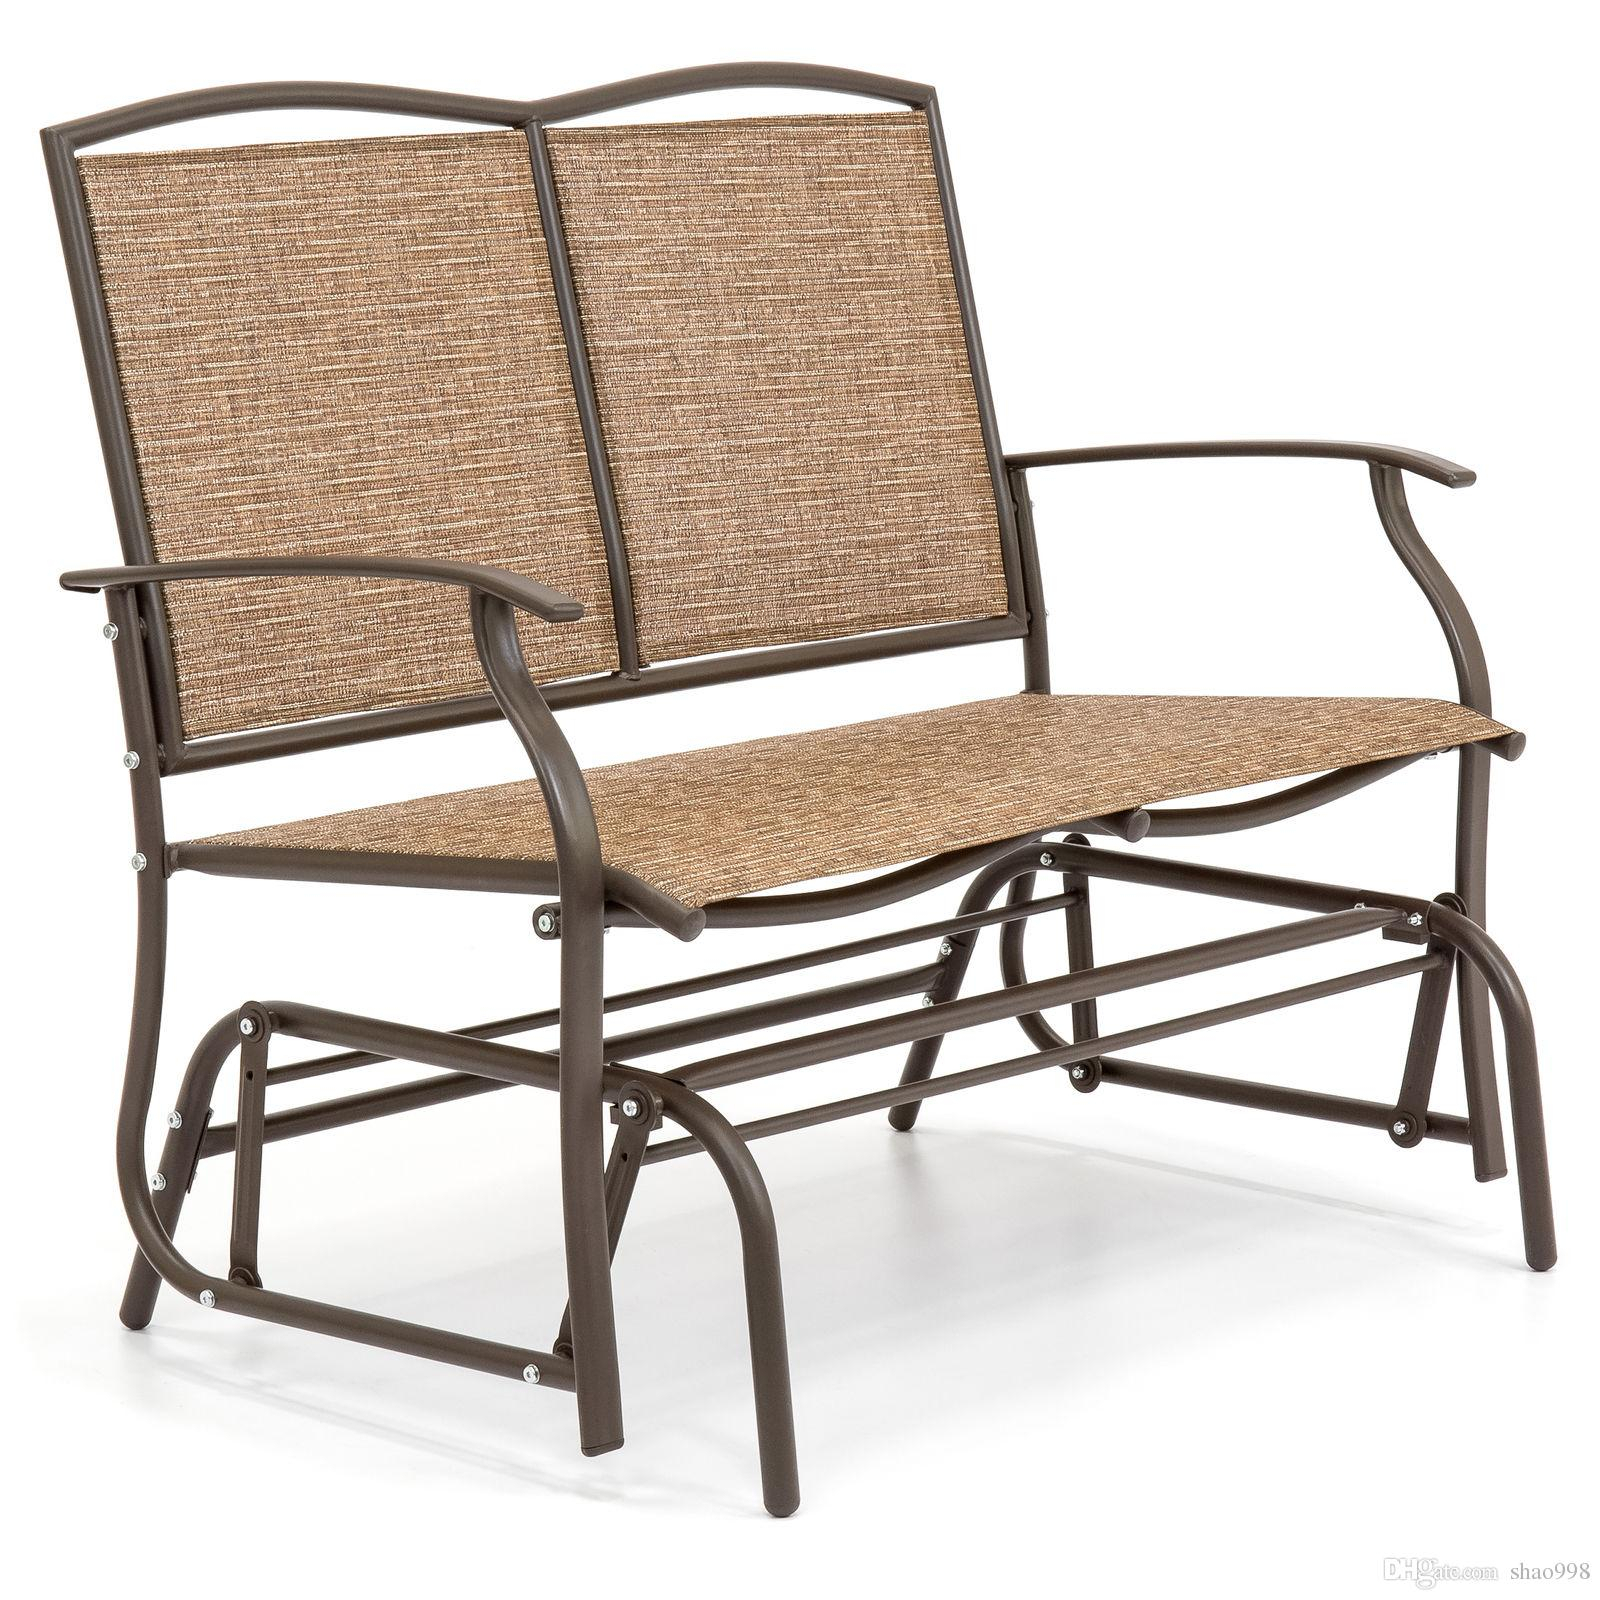 2019 Best Choice Products 2 Person Loveseat Patio Glider Bench Rocker From Shao998, $ (View 6 of 25)